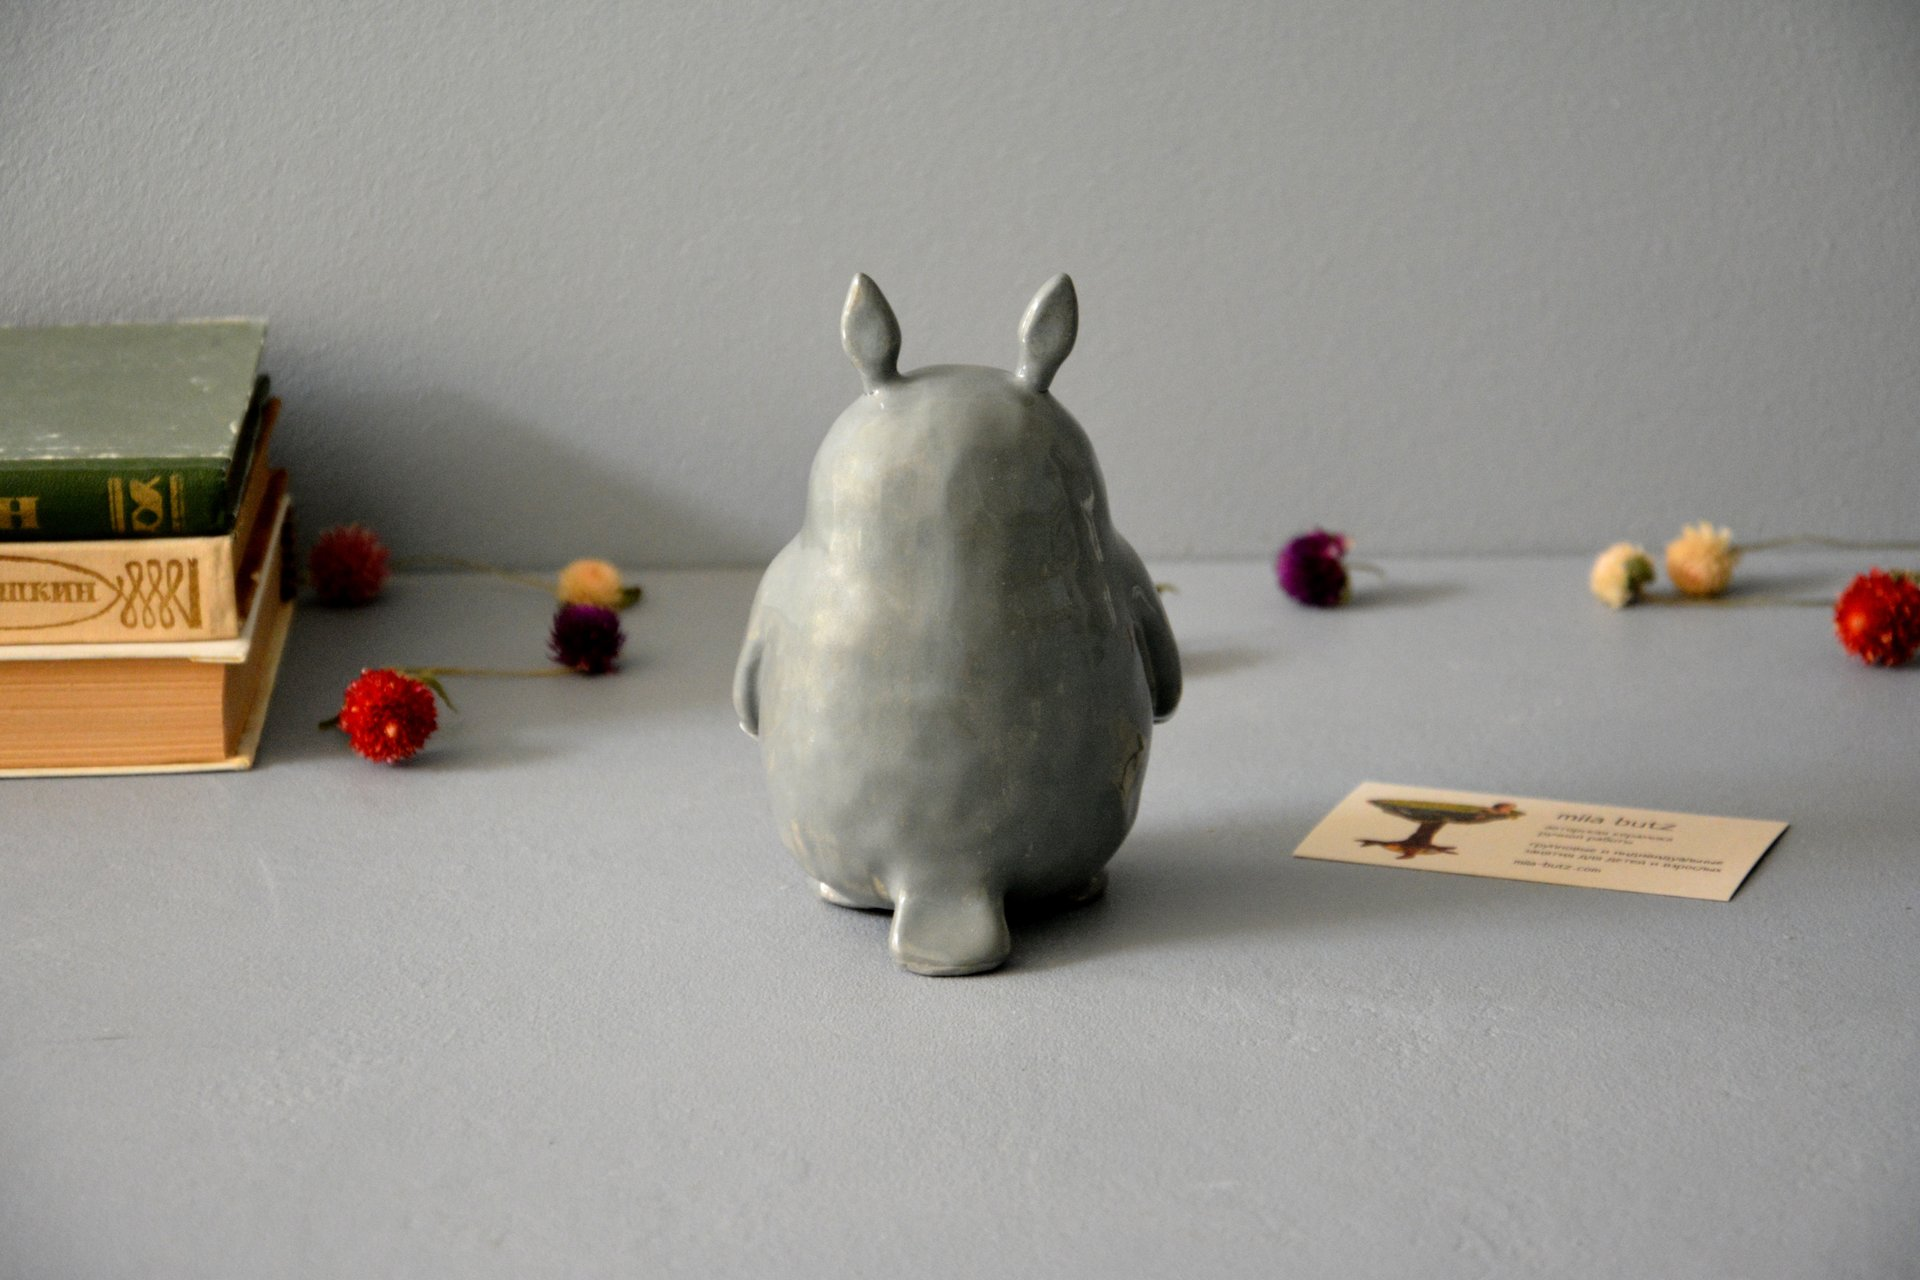 Ceramic figurine Totoro, height - 13 cm, photo 6 of 6.